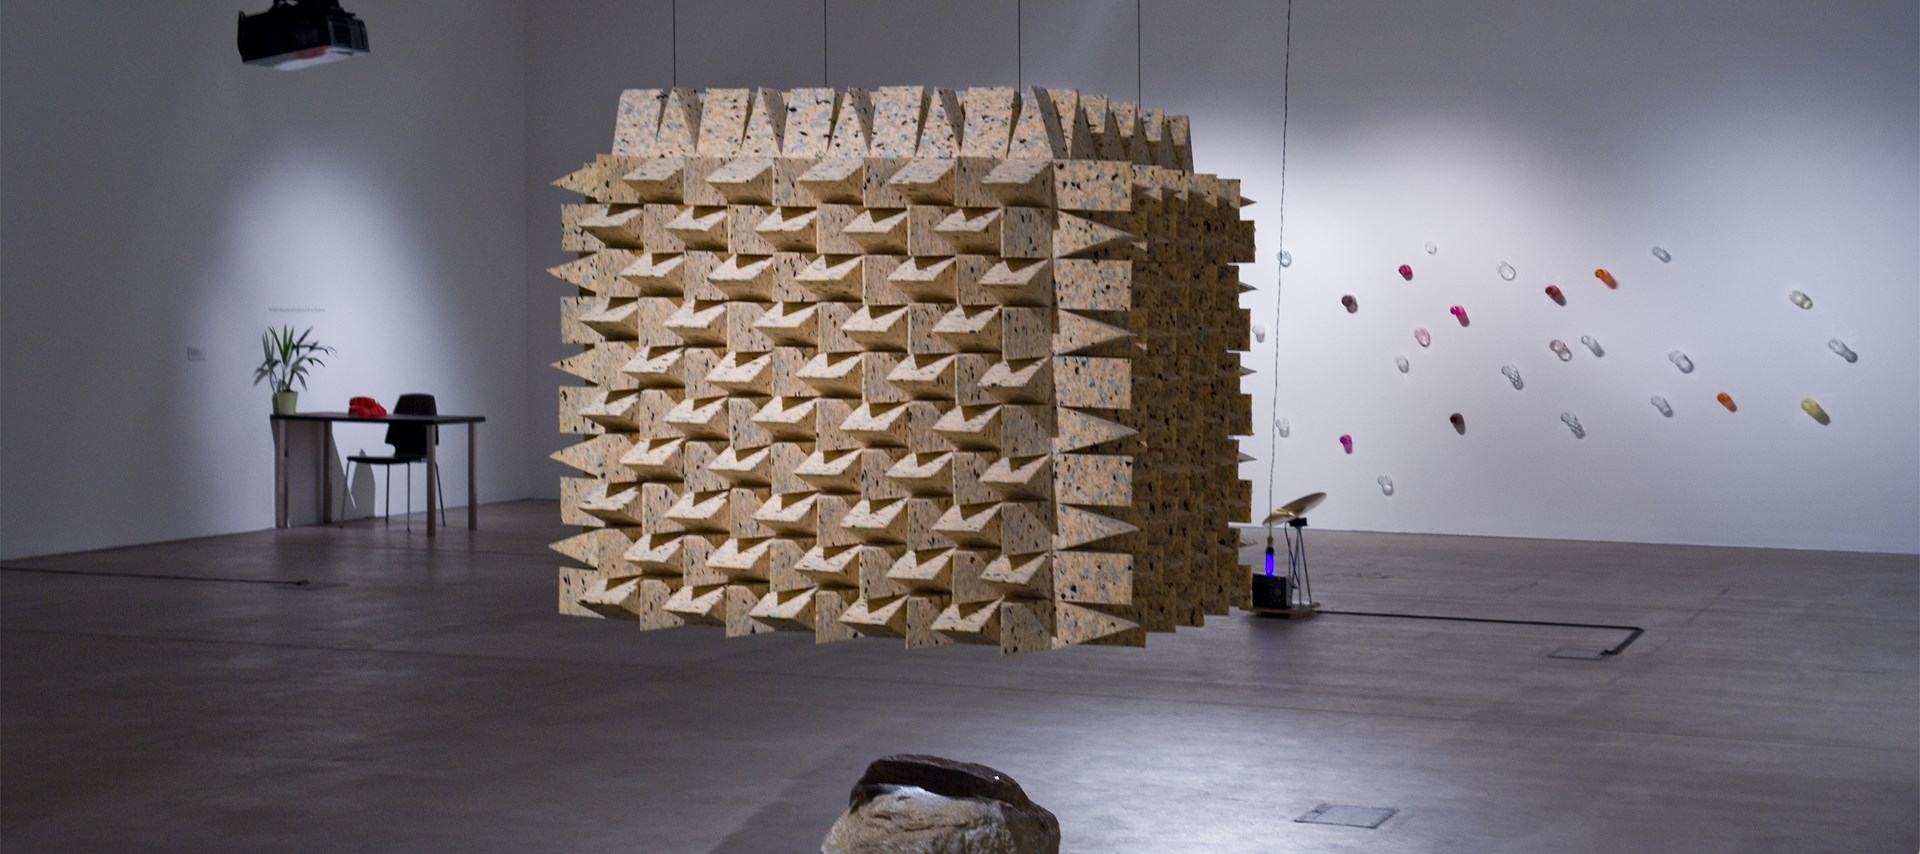 Listening: Hayward Touring Curatorial Open: Installation View: Photo: Colin Davison